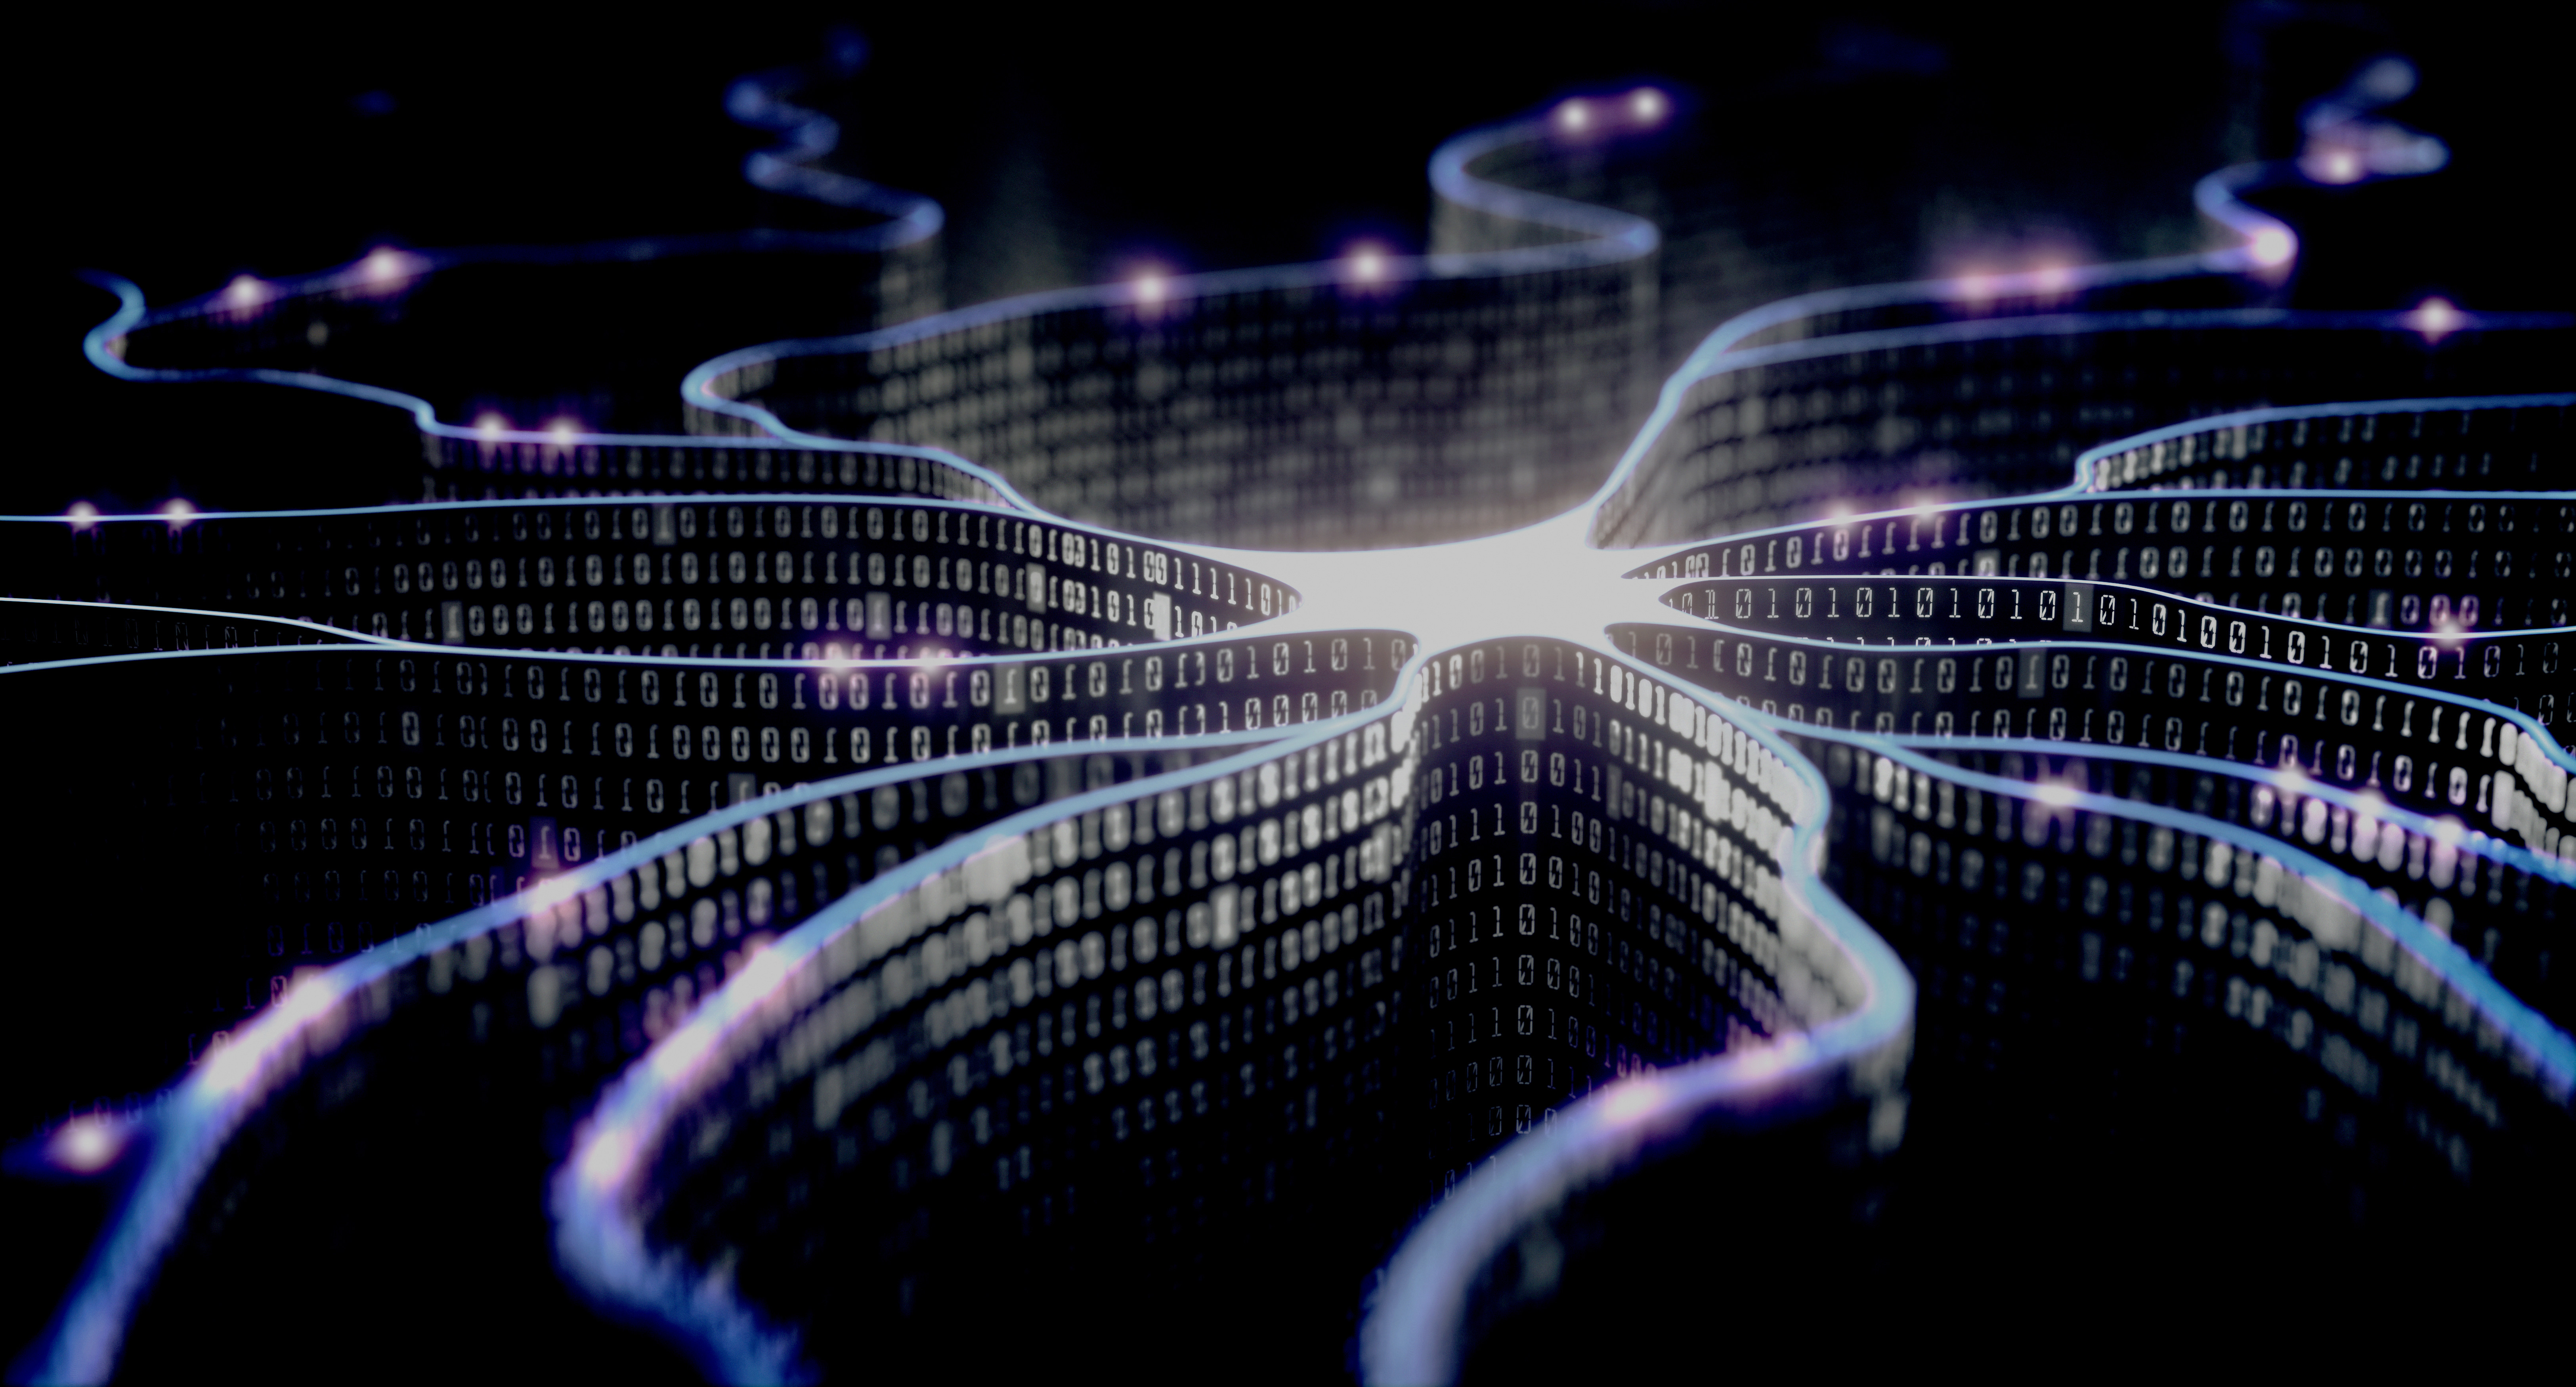 In an age of hypercomplexity and interconnected systems, AI will be essential for robust cybersecurity.